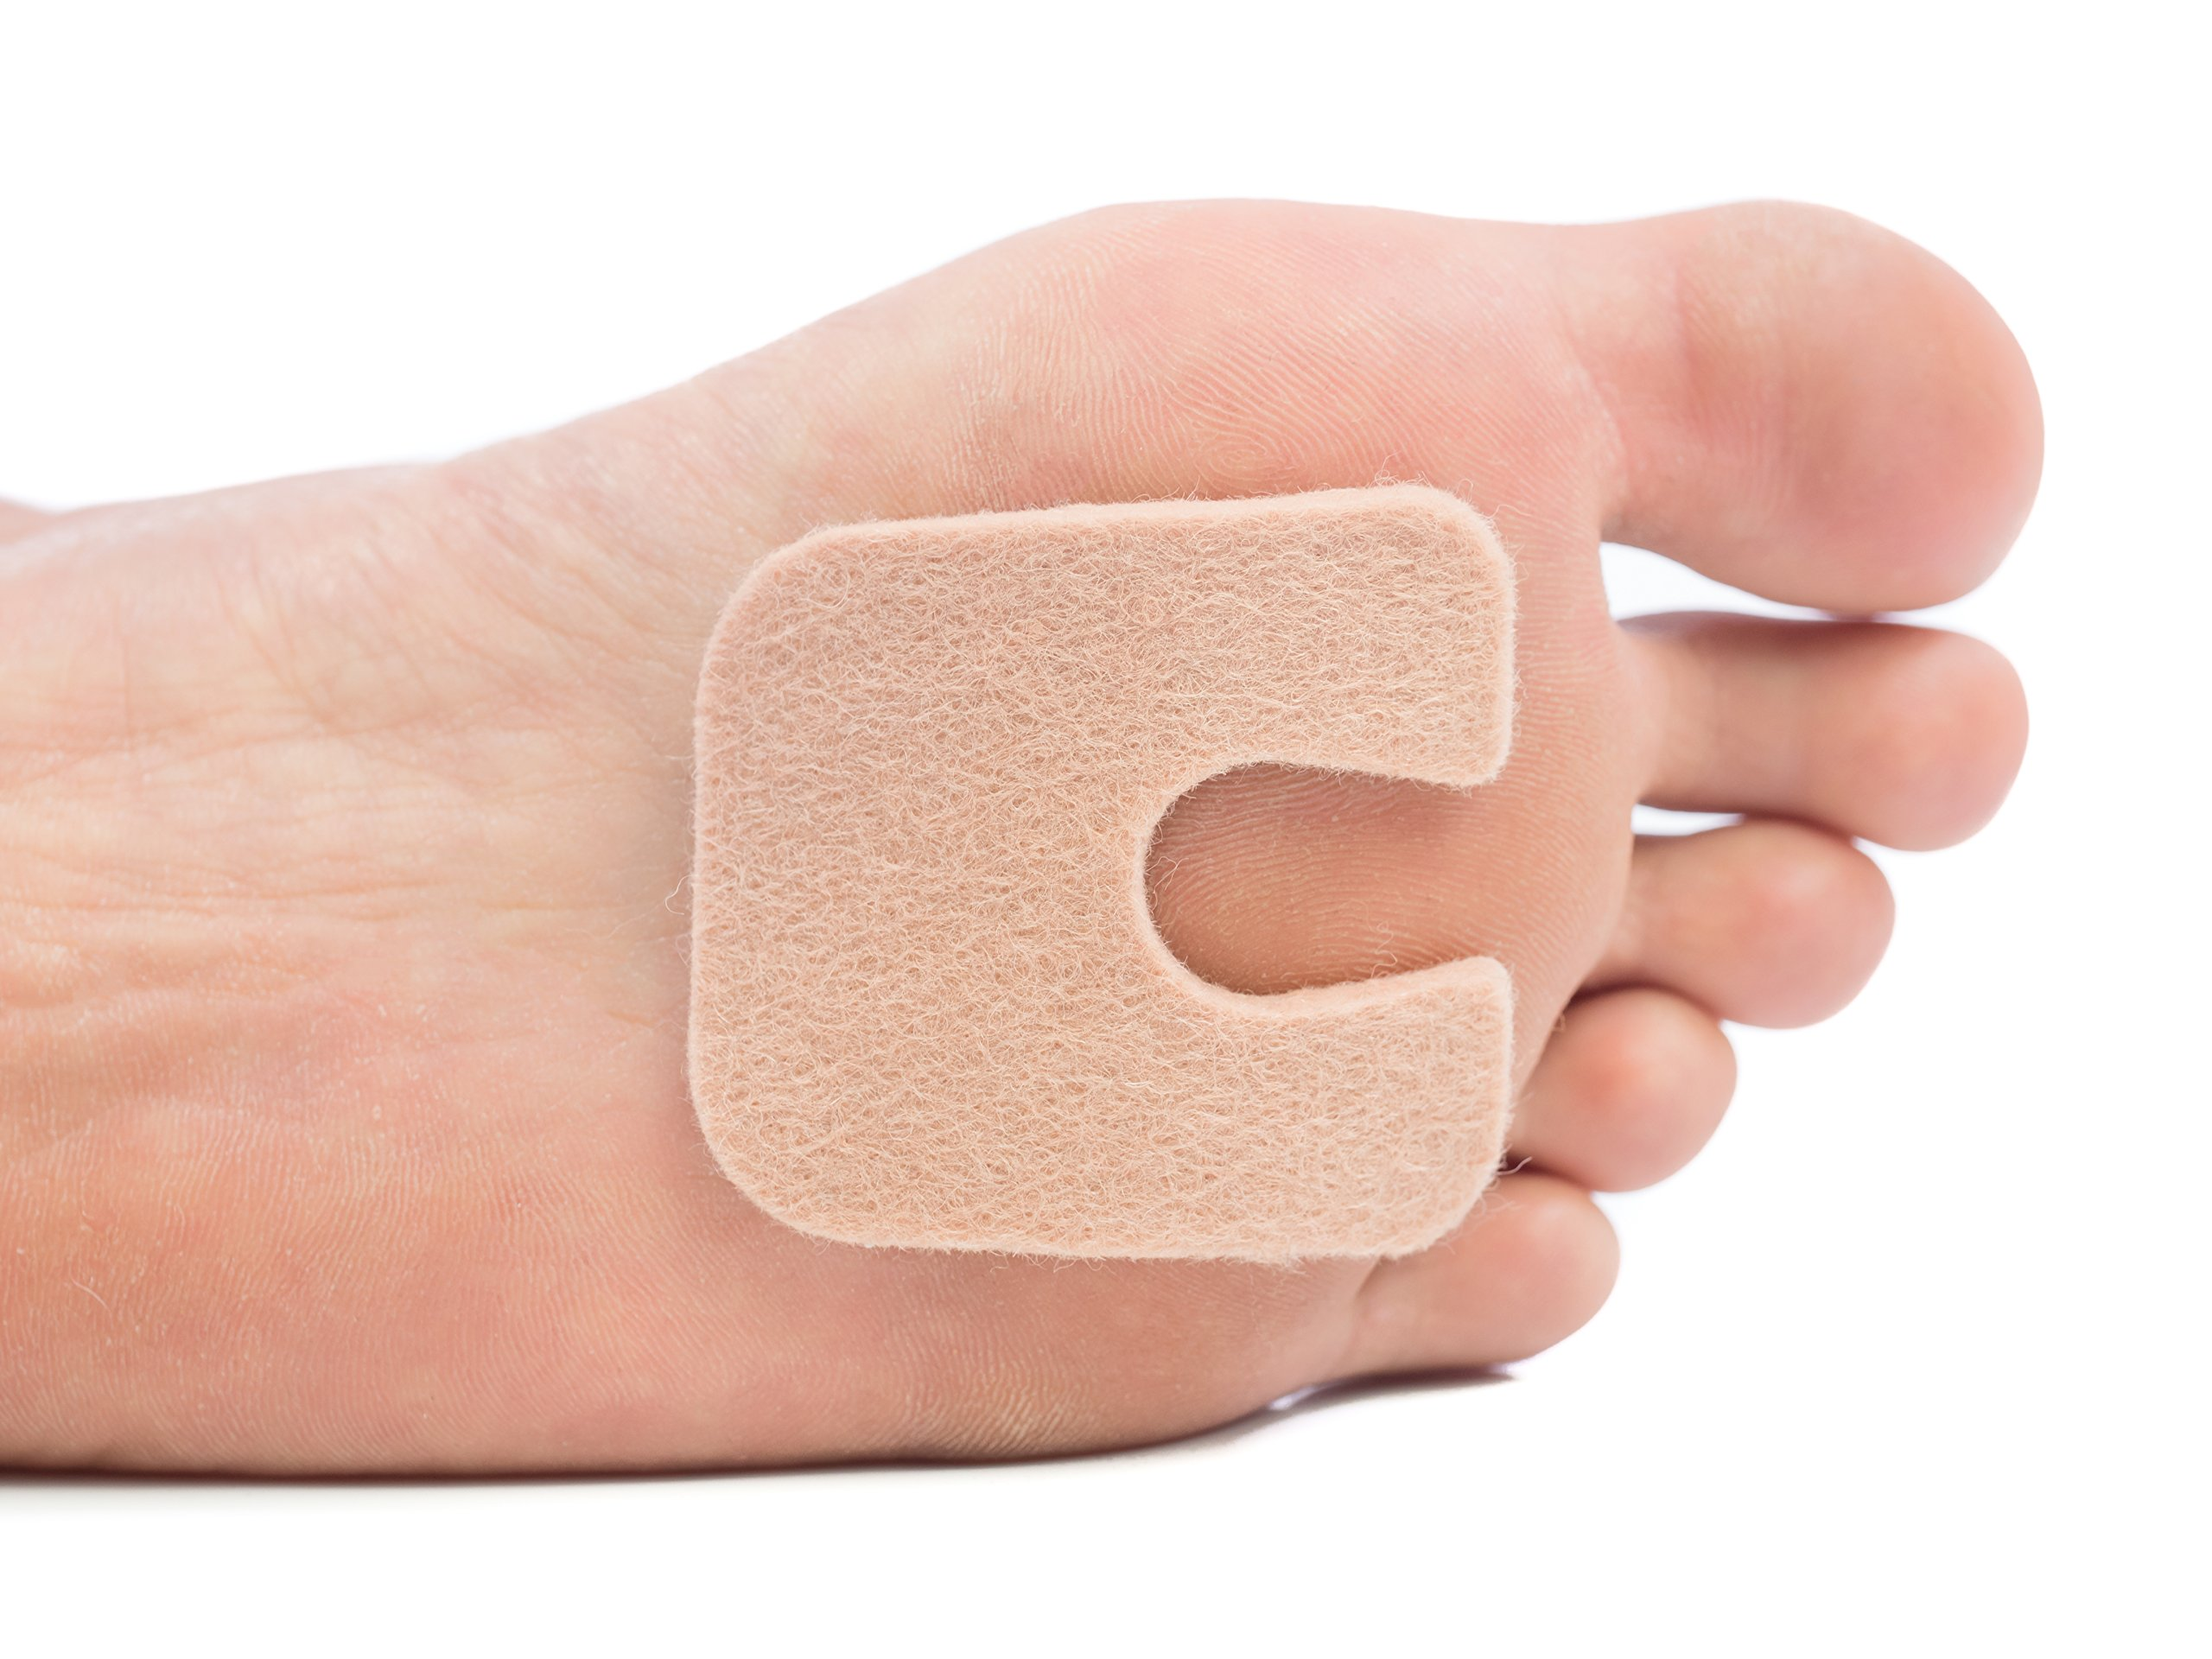 "ZenToes U-Shaped Felt Callus Pads | Protect Calluses from Rubbing on Shoes | Reduce Foot and Heel Pain | Pack of 24 1/8"" Self-Stick Pedi Cushions"